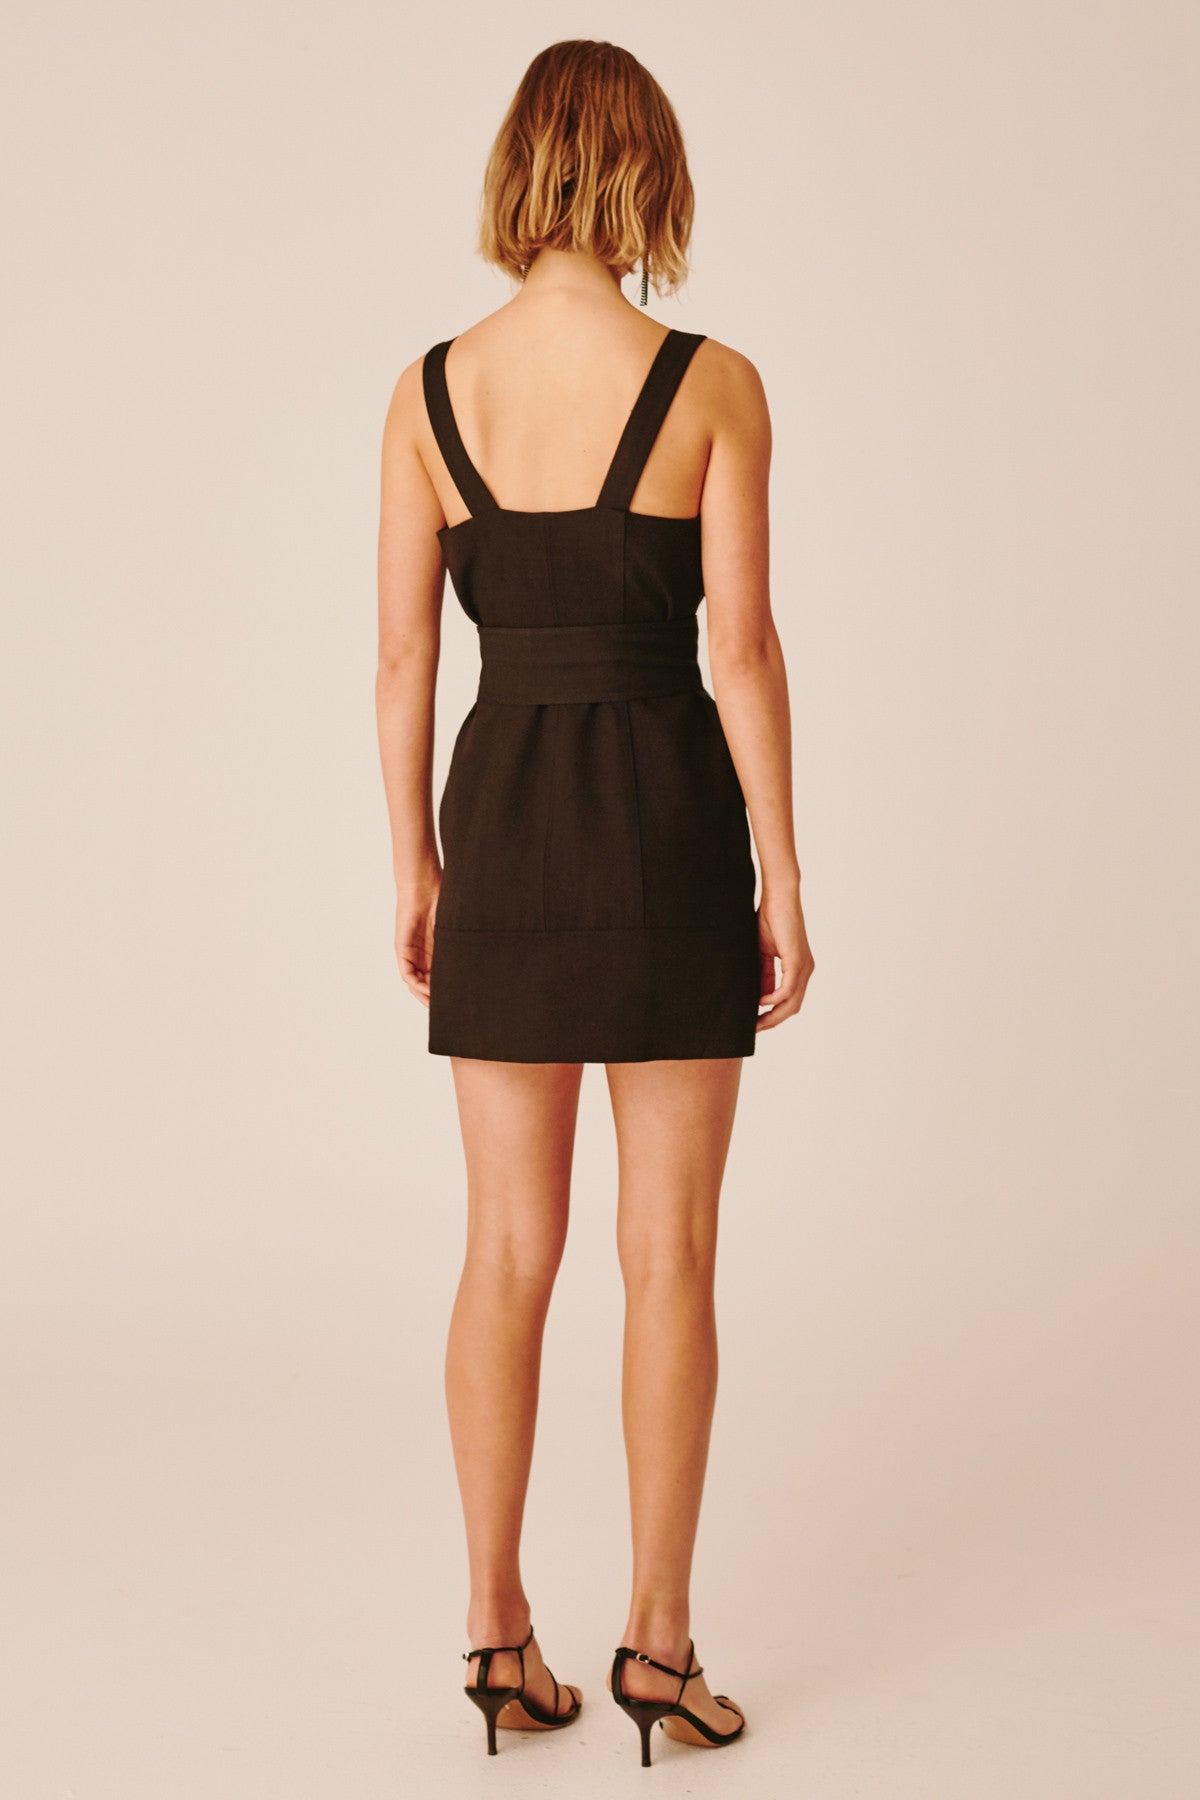 COLLISIONS MINI DRESS black